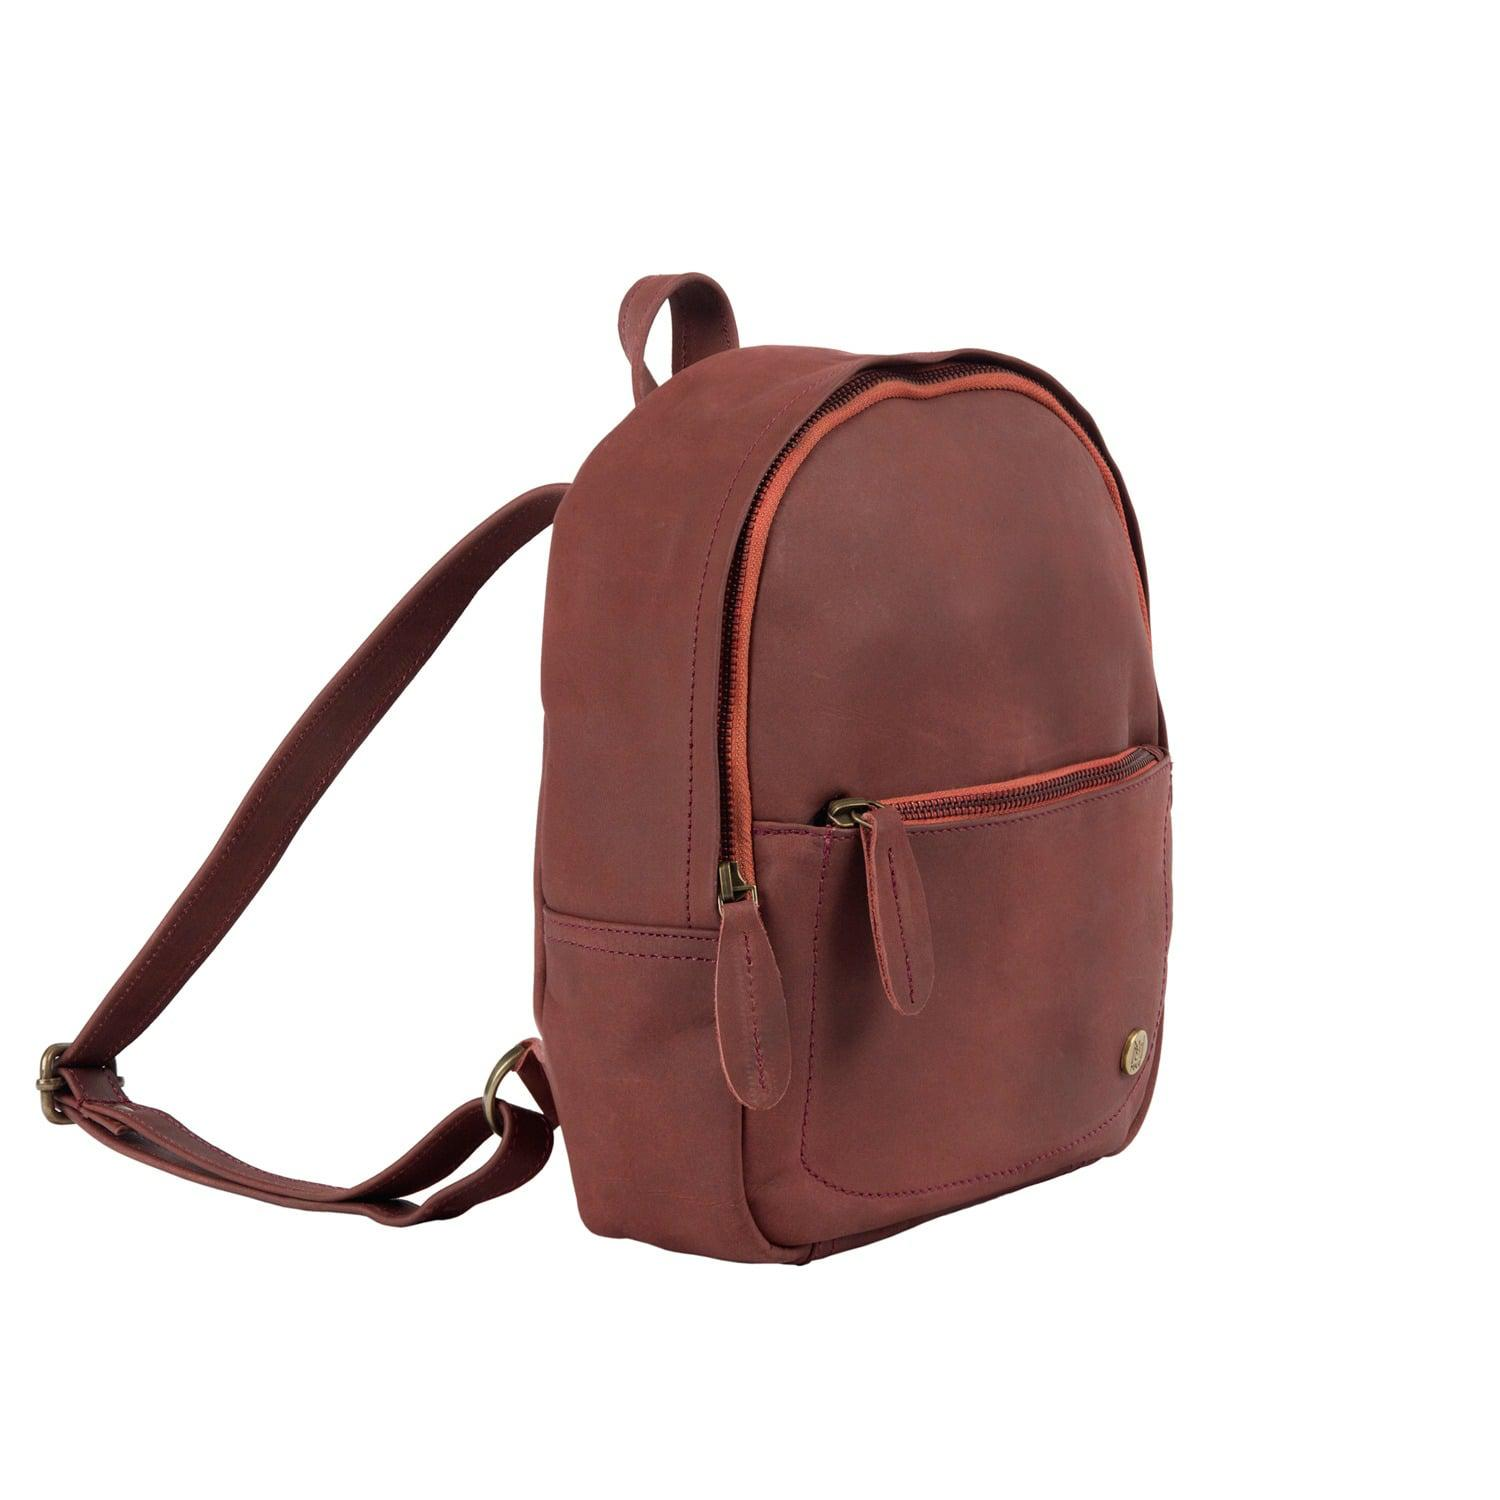 MAHI Leather - Red Mini Backpack In Vintage Maroon Nubuck Suede Leather -  Lyst. View fullscreen 115bfd822dcd6